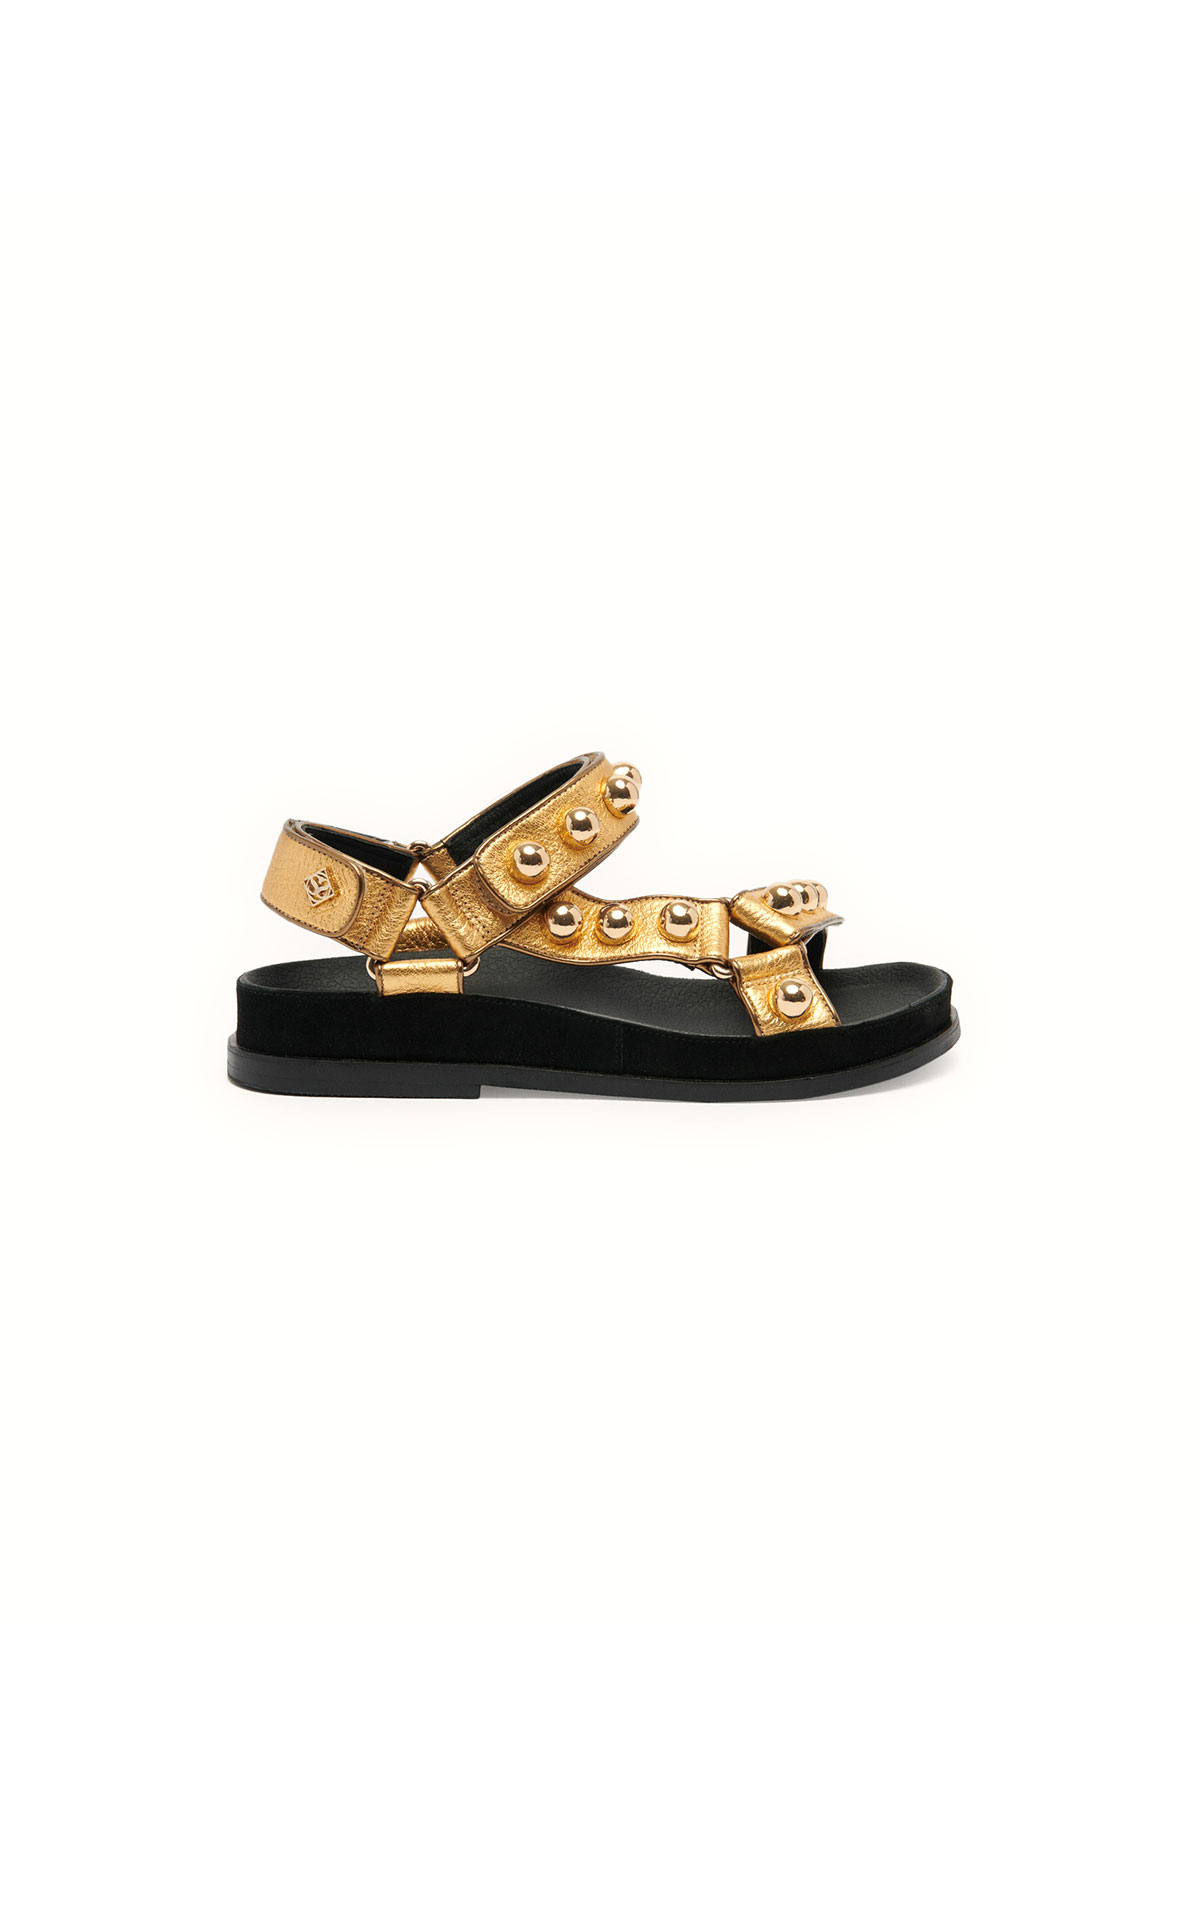 Sandro flat leather sandals at The Bicester Village Shopping Collection